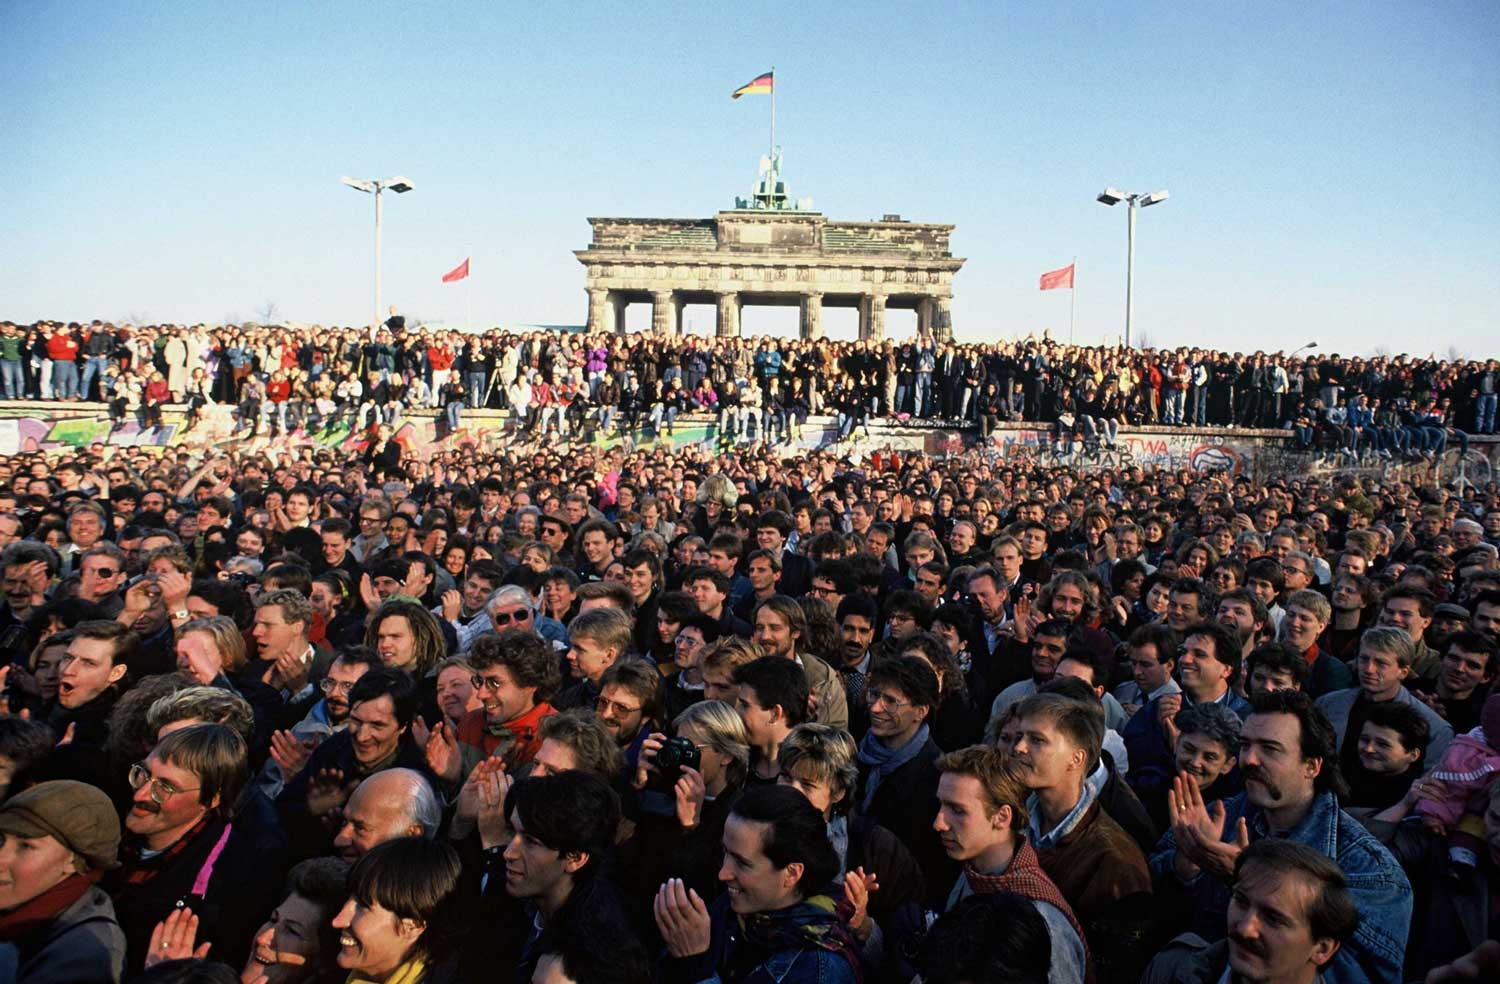 Thousands rushed to the wall in the first few days after its opening.Credit...Robert Wallis/Corbis, via Getty Images